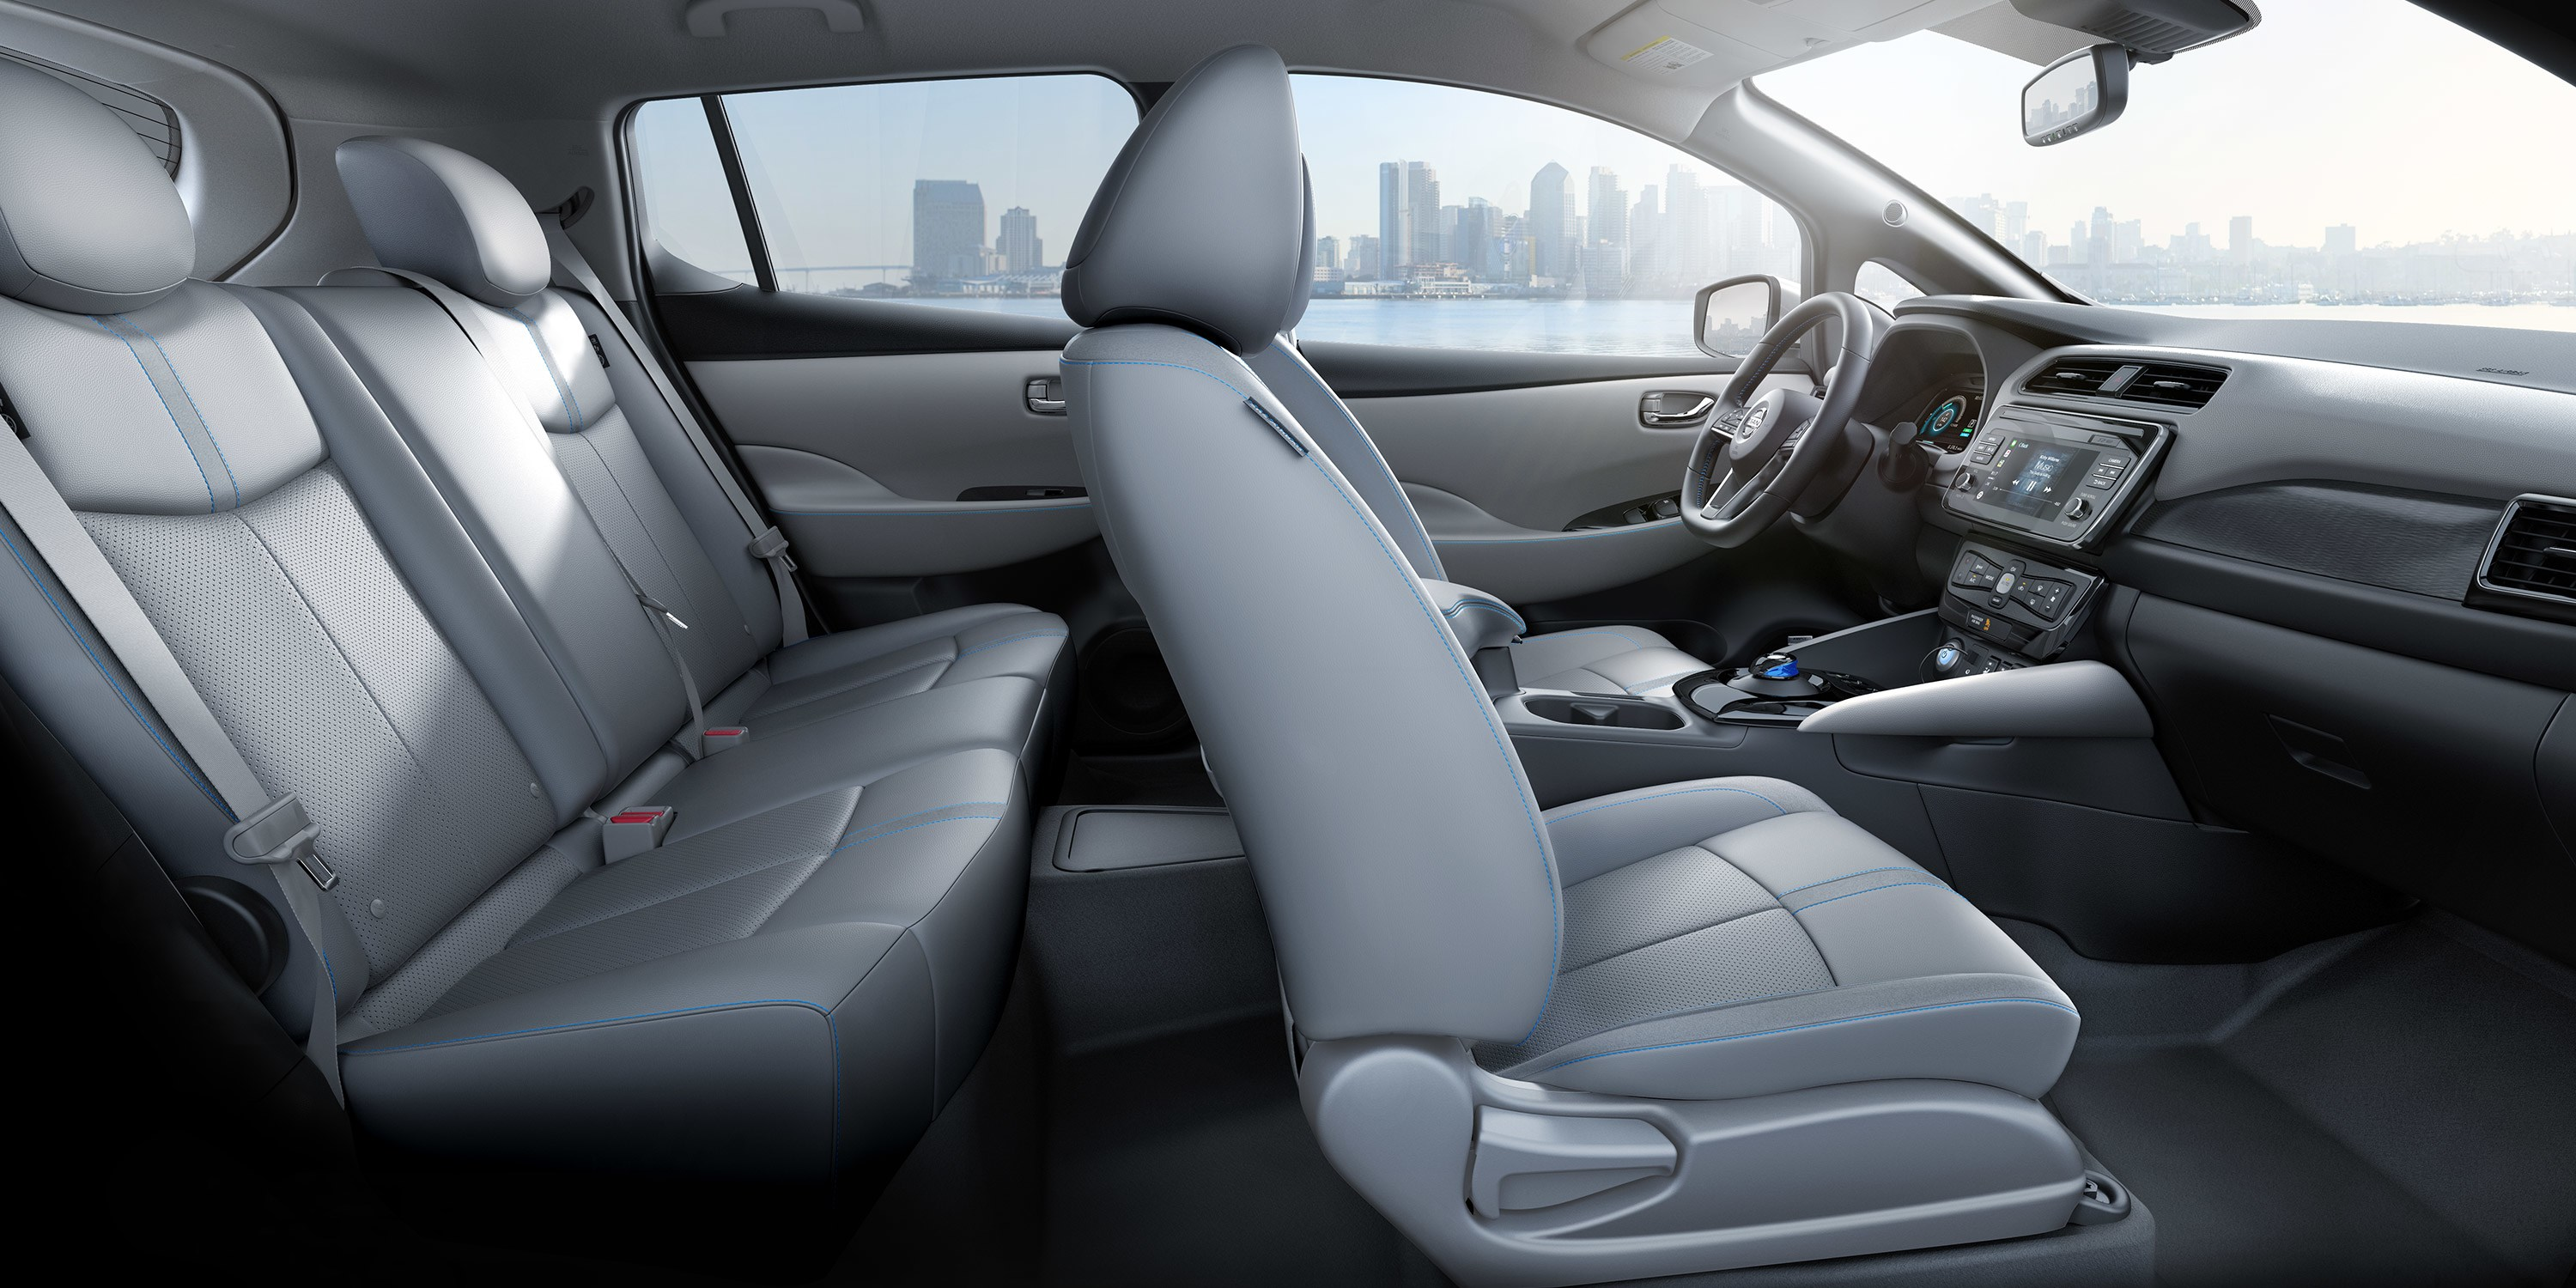 You'll Love the Spacious Interior of the LEAF!